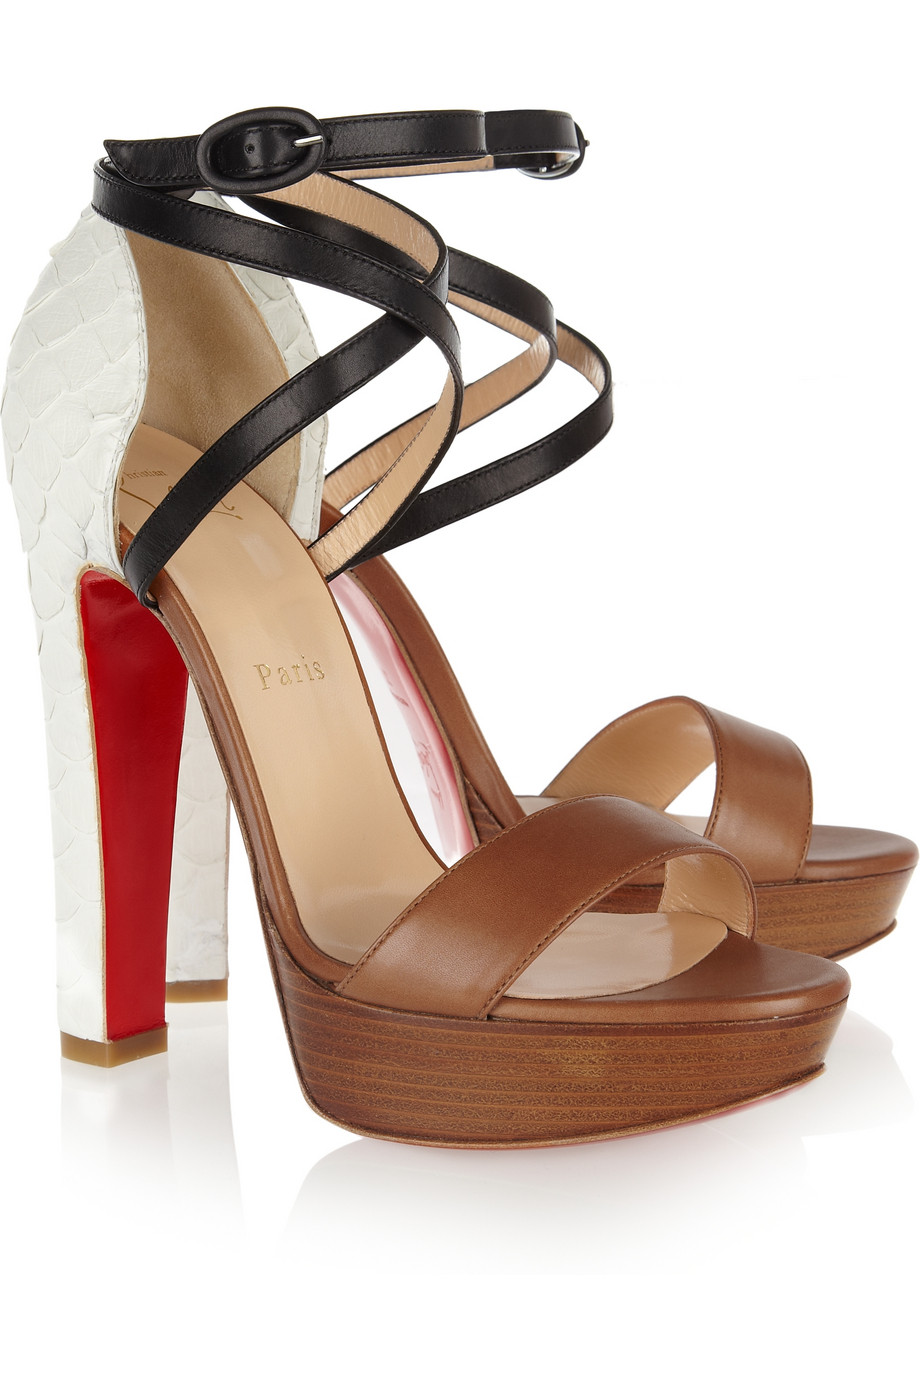 Christian Louboutin Black Summerissima 140 Python And Leather Sandals